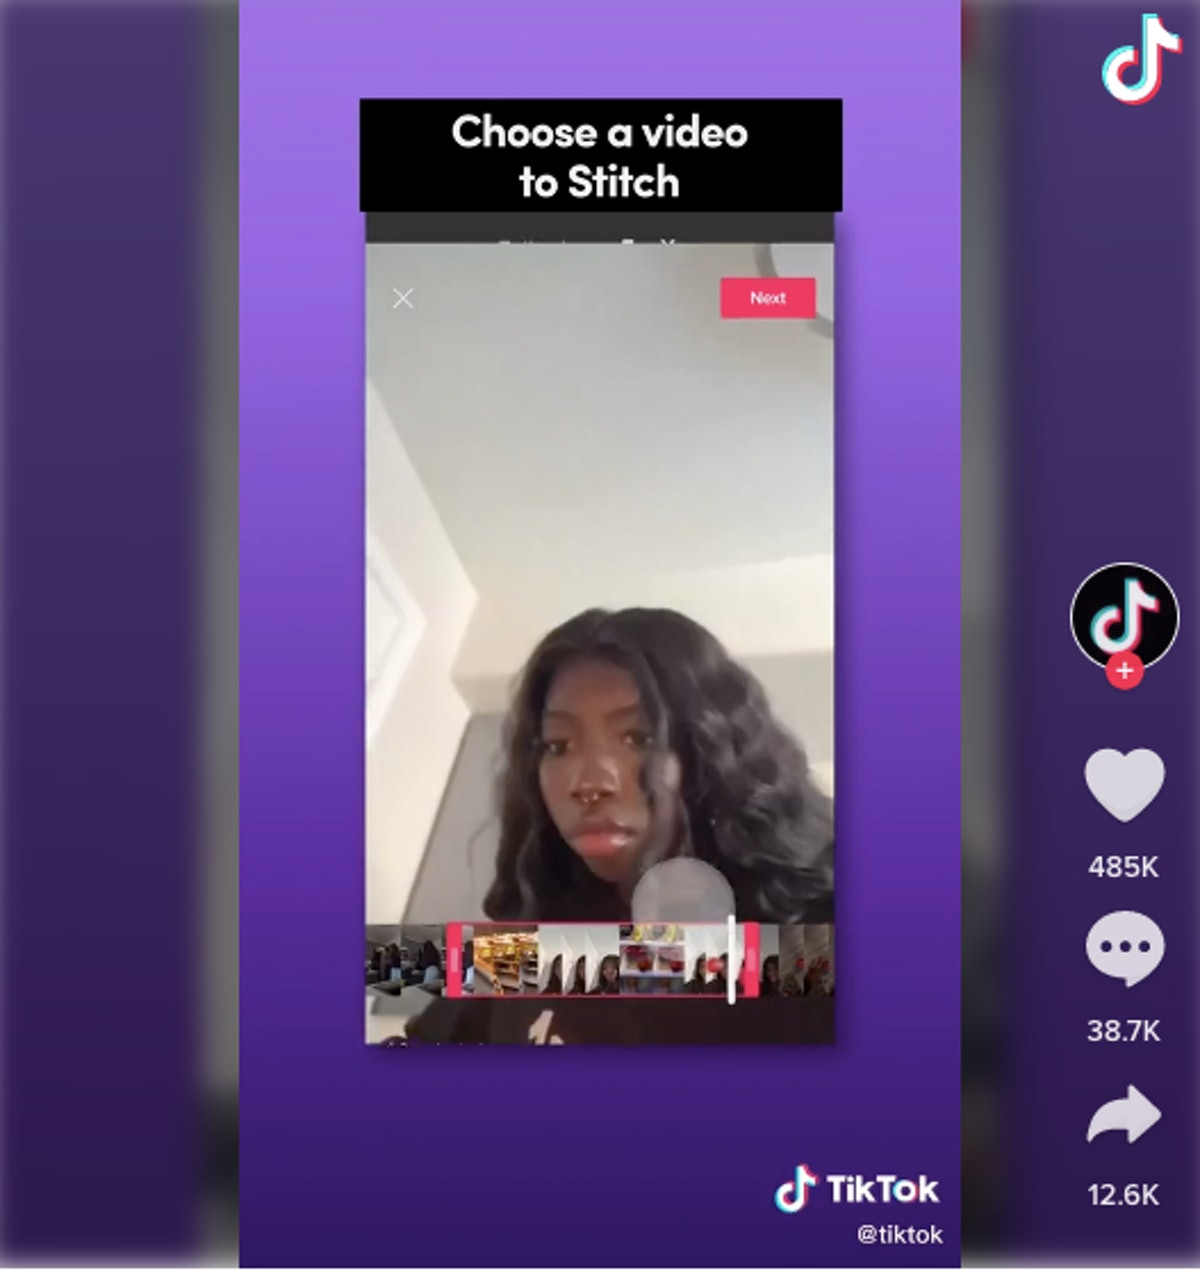 TikTok's Stitch effect lets you get creative with other people's videos.